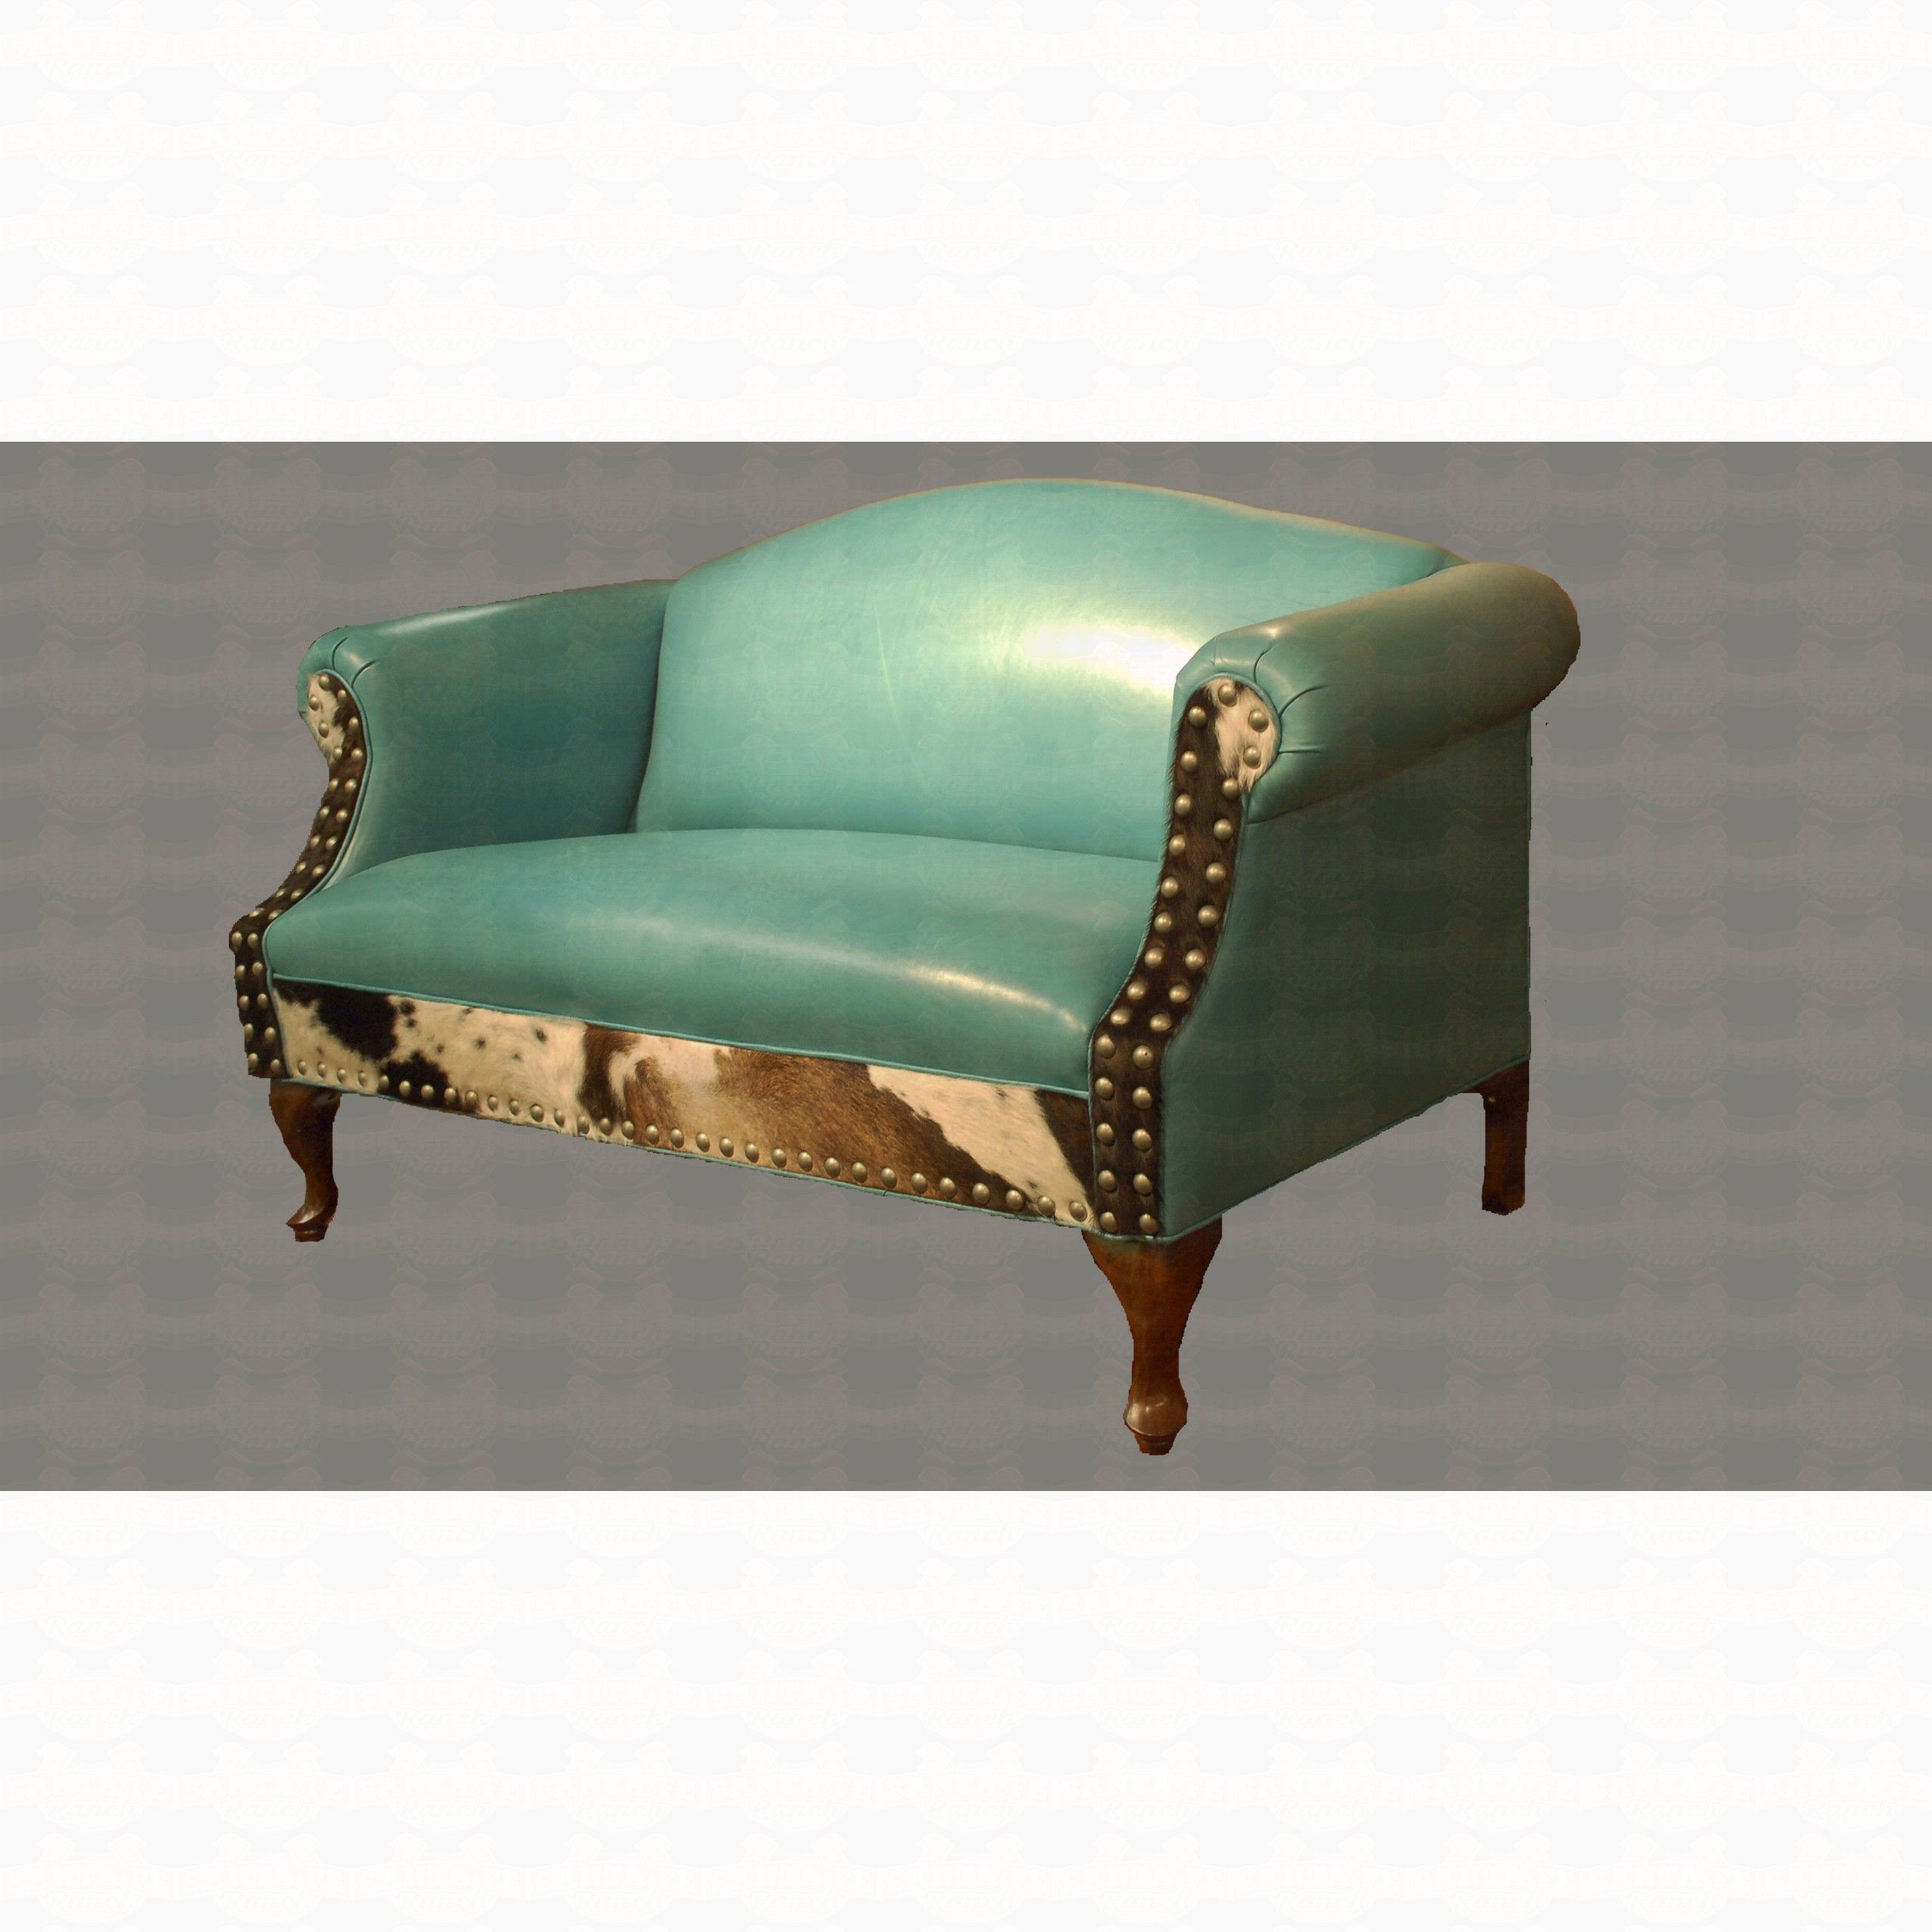 great blue heron u0027s albuquerque turquoise settee is reminiscent of the beautiful traditional turquoise art and jewelry of america u0027s southwest  great blue heron albuquerque turquoise  settee http   www      rh   pinterest